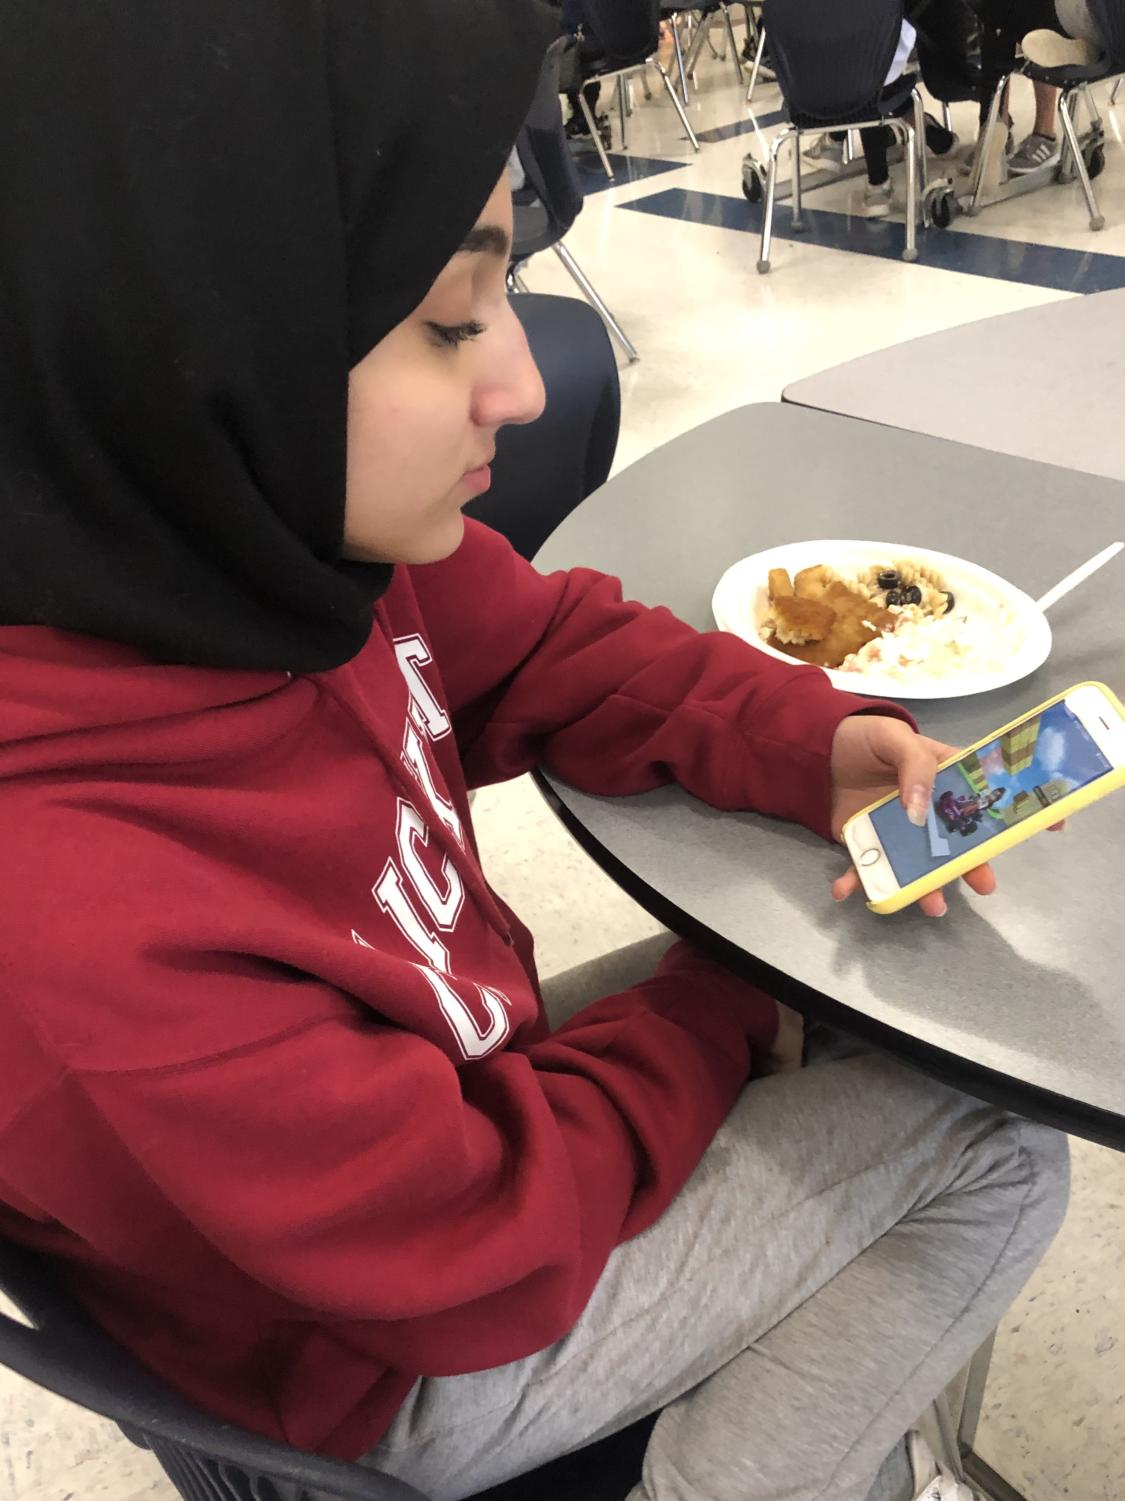 Freshman Ruba Ramadan passes the time during lunch by playing Mario Kart on her phone.